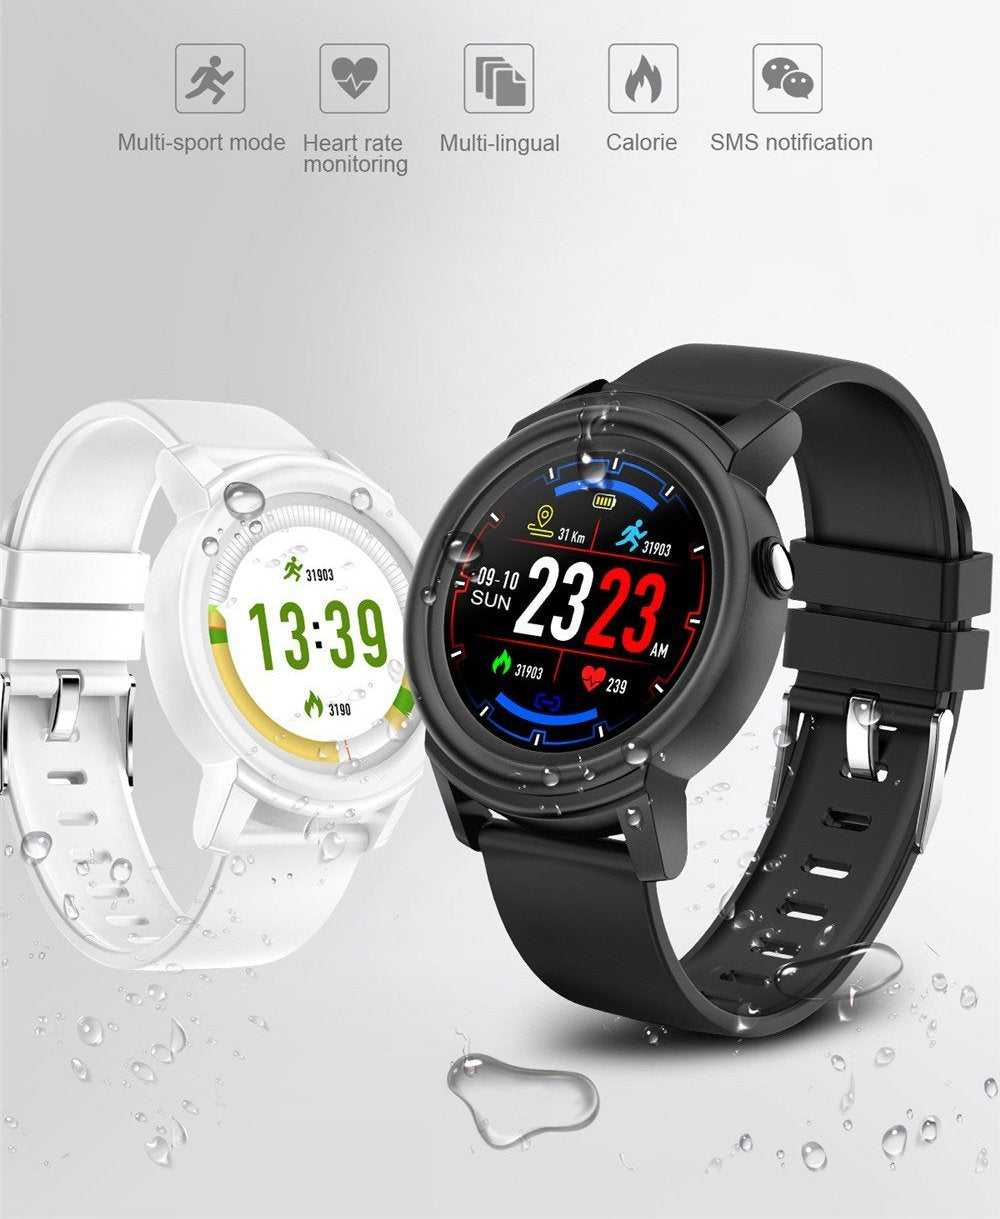 CHAMPIONS Reloj inteligente Bluetooth compatible con Android y iOS - DAMASQUI ®